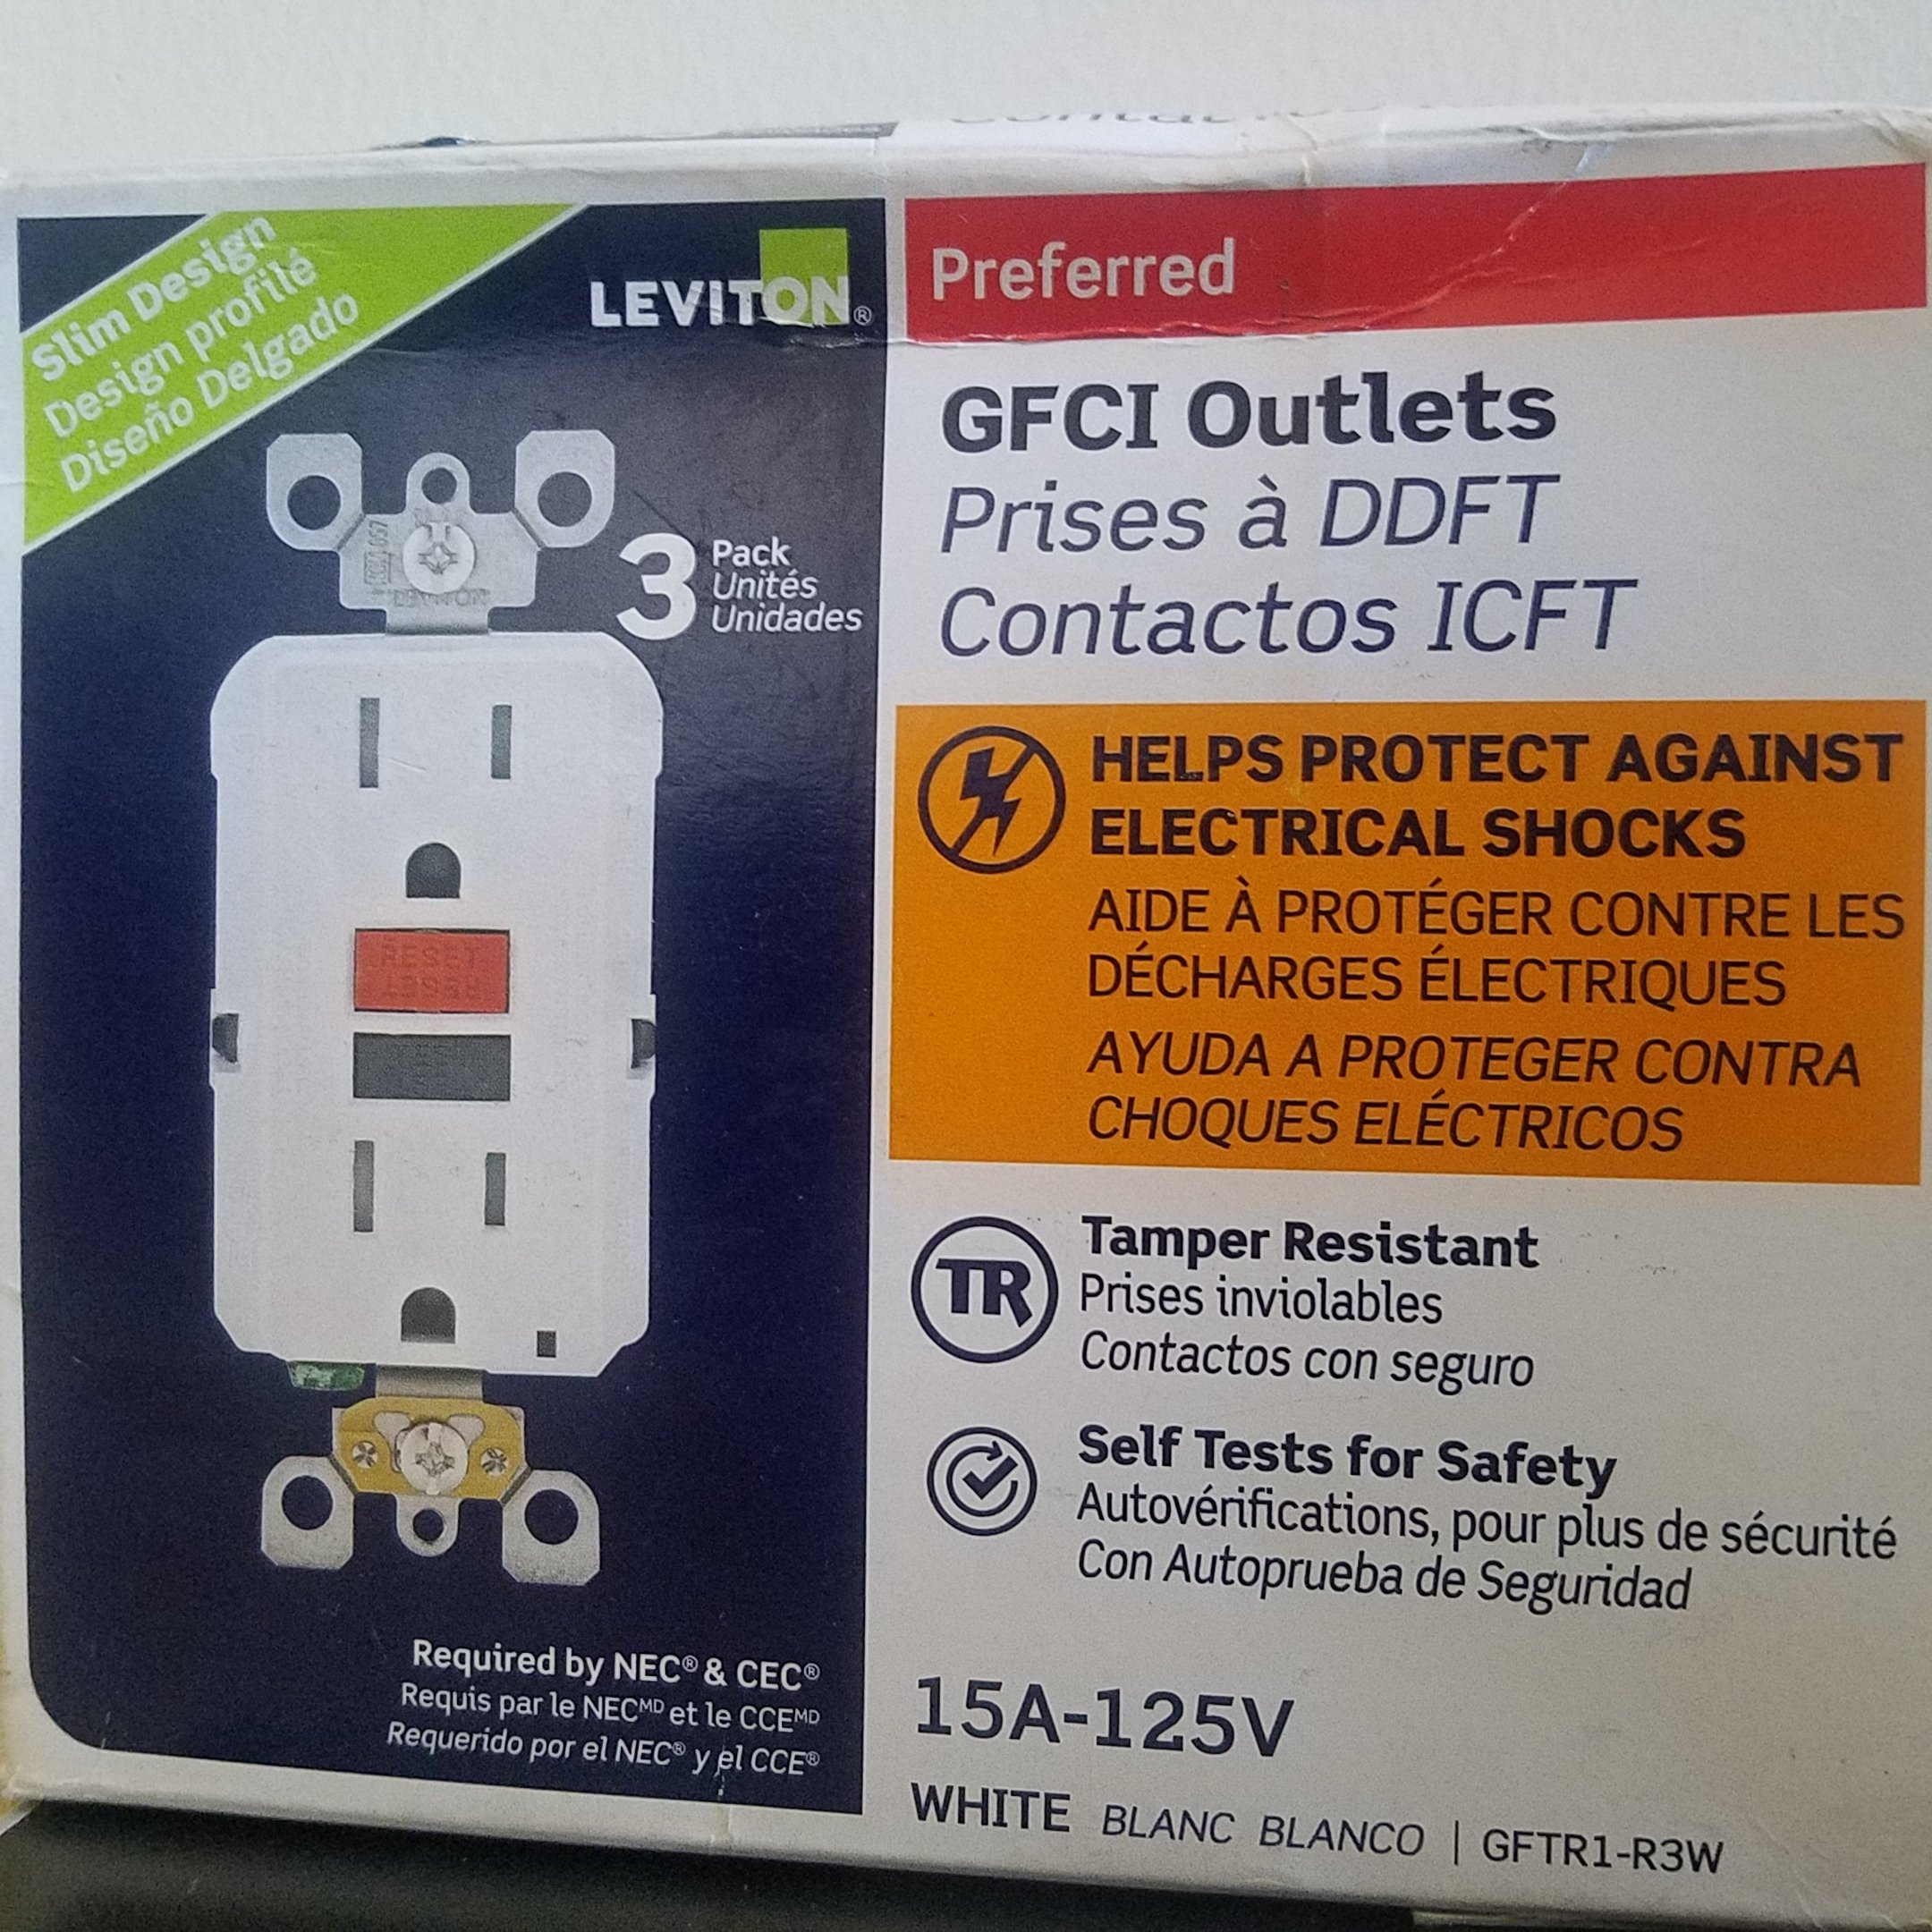 Best Rated In Ground Fault Circuit Interrupter Outlets Helpful Portable W Two 15 A Breaker Leviton Gfci M12 Gftr1 R3w White 3 Pack Product Image